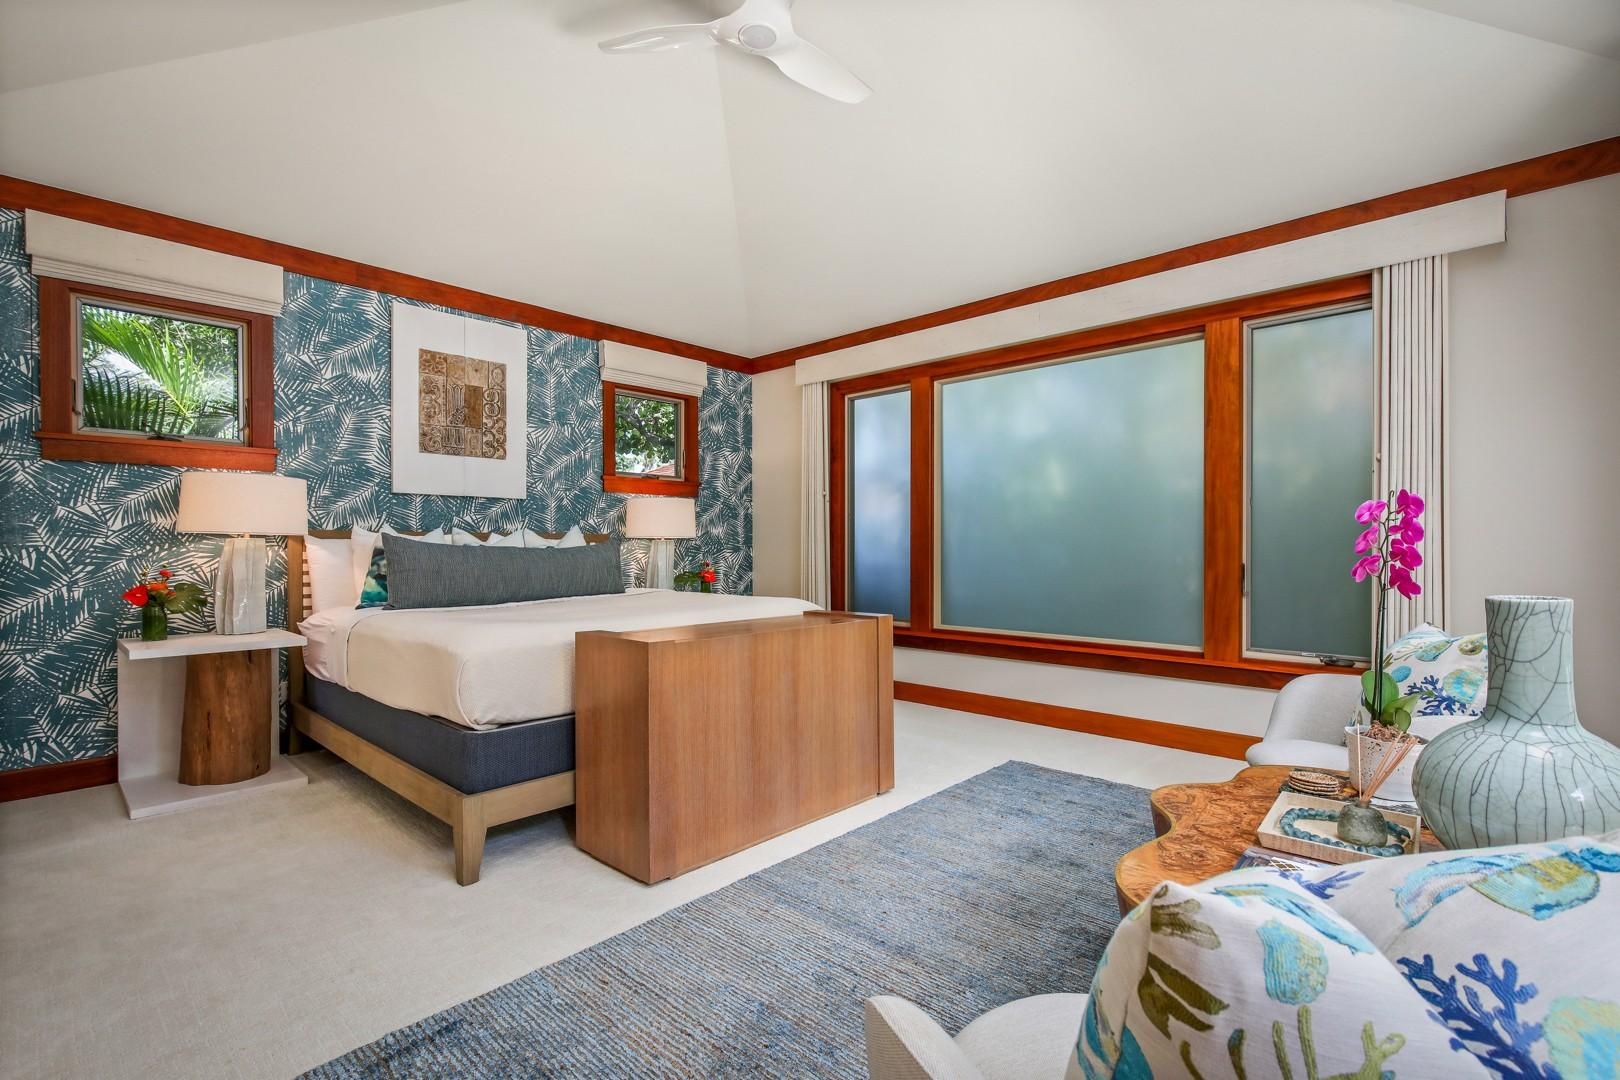 Guest Room 4 - a large master suite with a detached private entrance and its own kitchenette.